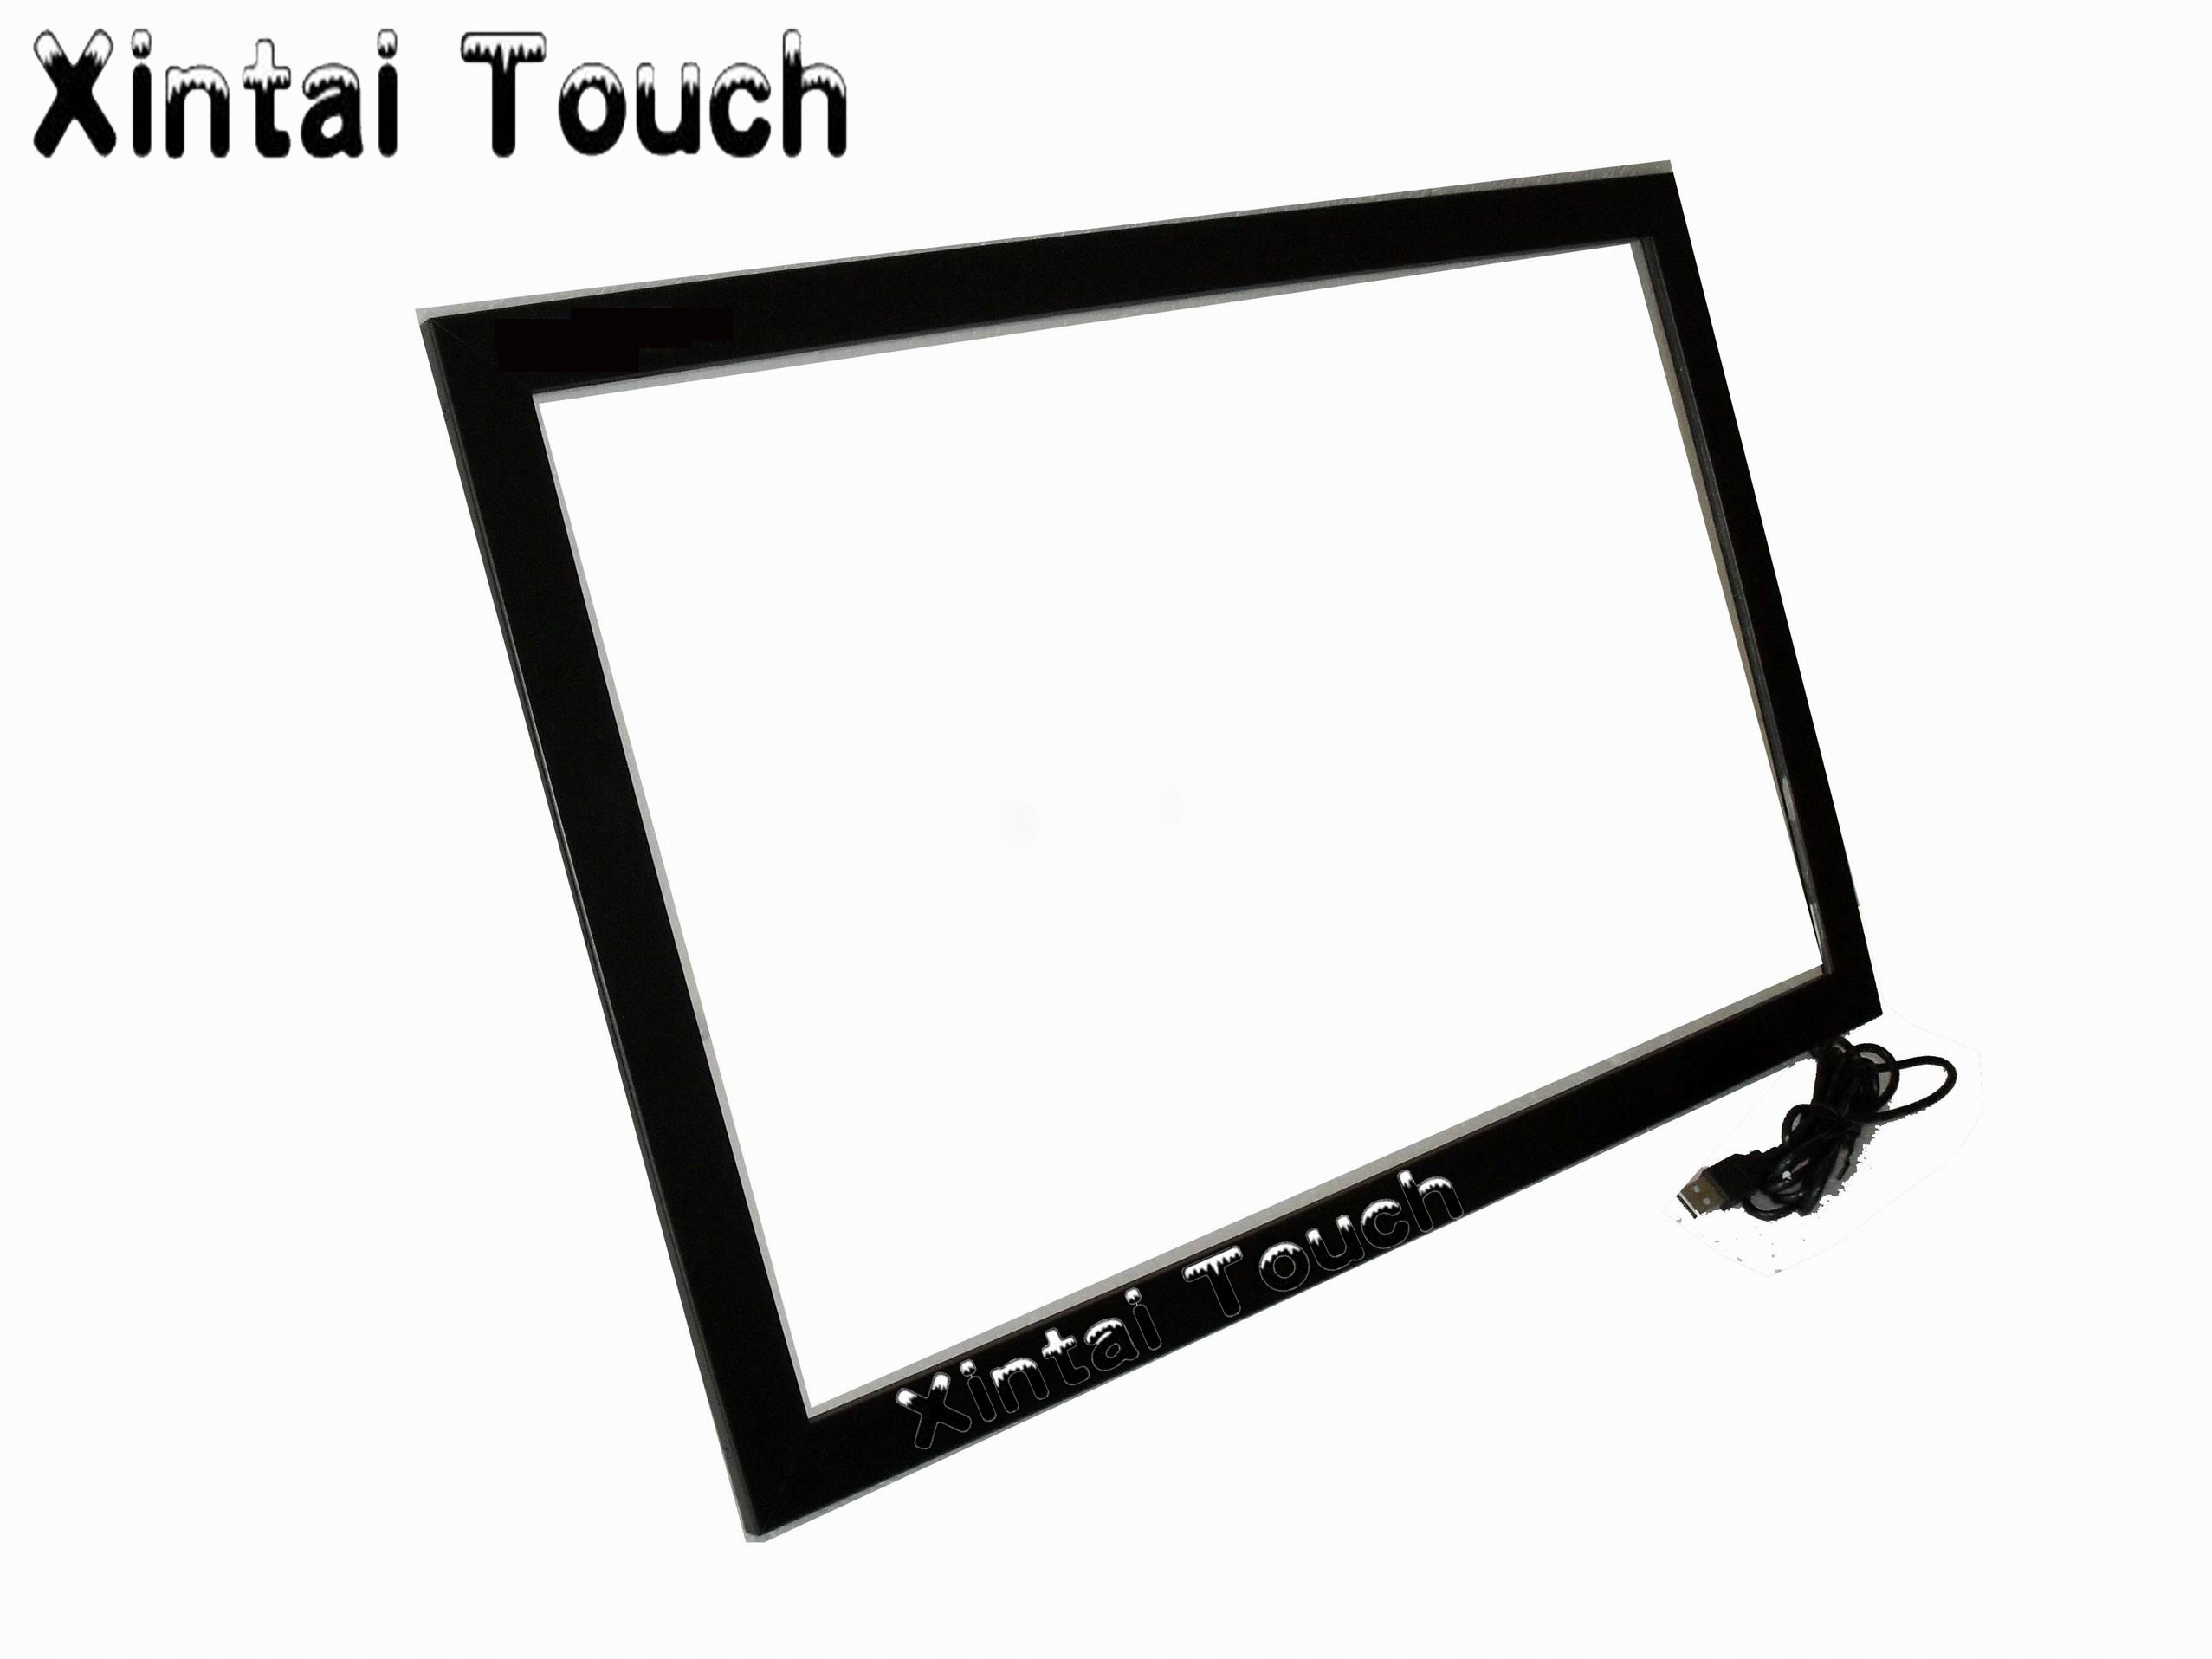 Free Shipping! 50 IR Touch Screen Panel,10 touch points infrared Multi-Touch Frame Overlay KitFree Shipping! 50 IR Touch Screen Panel,10 touch points infrared Multi-Touch Frame Overlay Kit